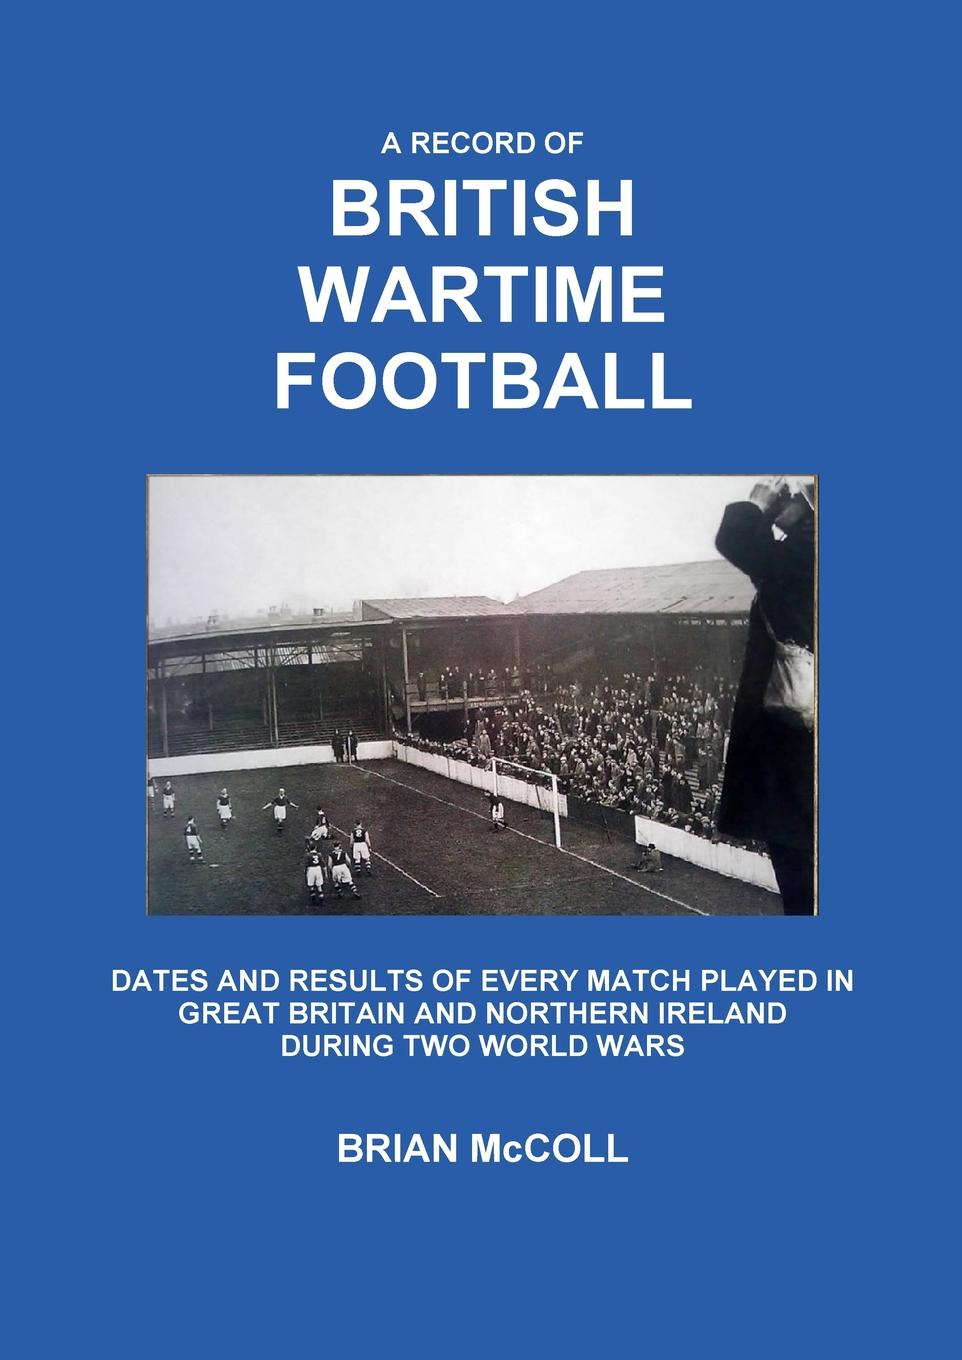 Brian McColl A Record of British Wartime Football